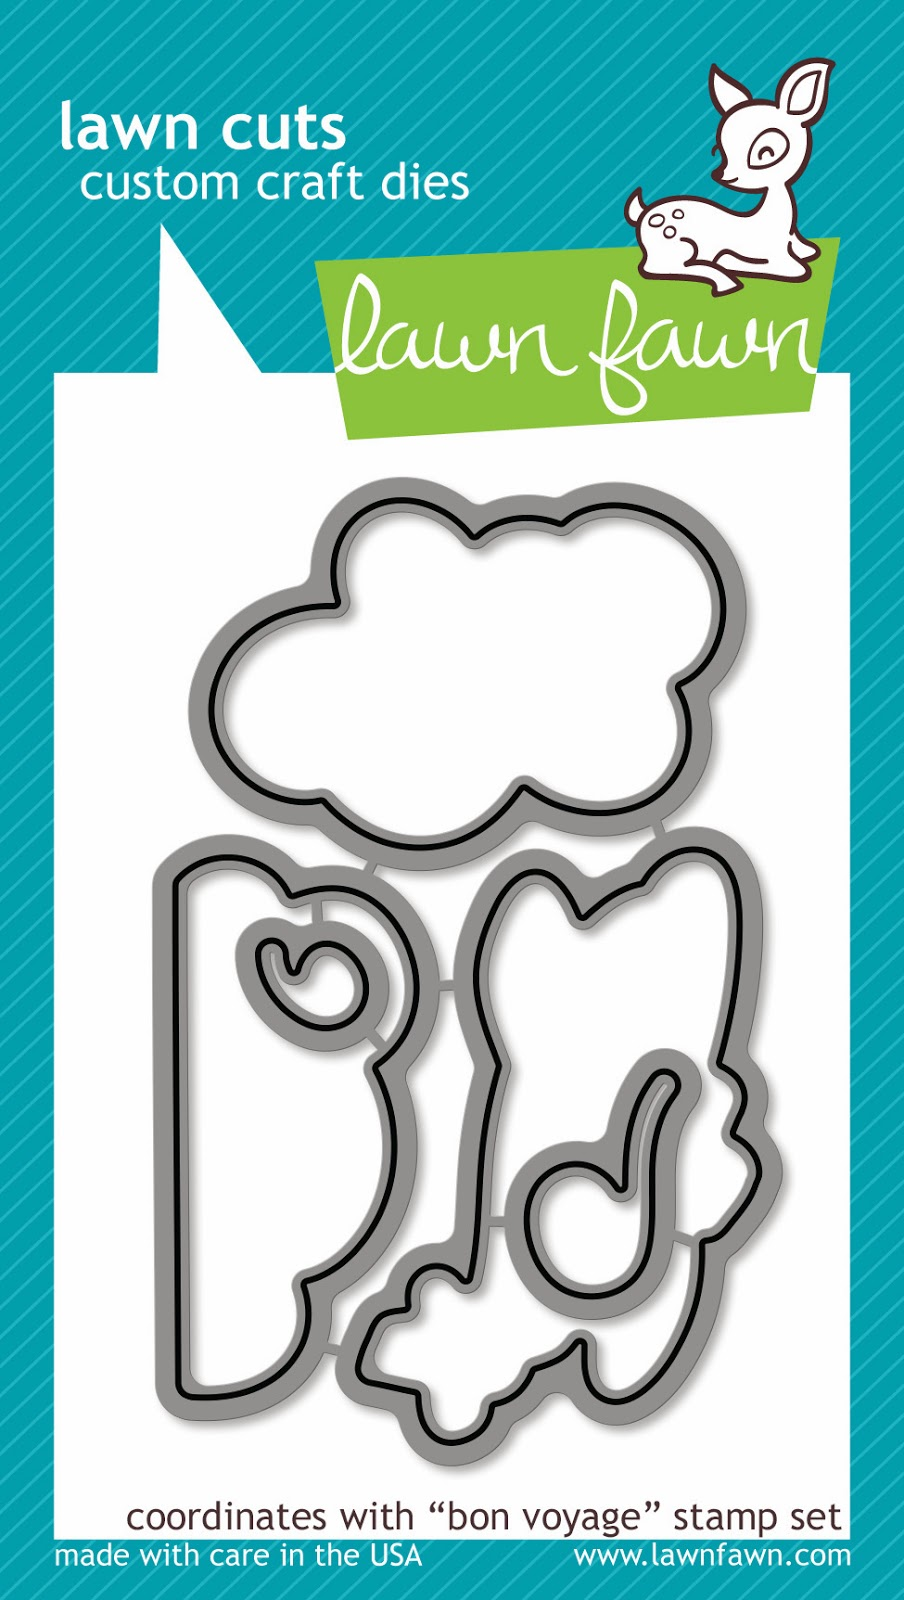 http://www.lawnfawn.com/collections/new-products/products/bon-voyage-lawn-cuts